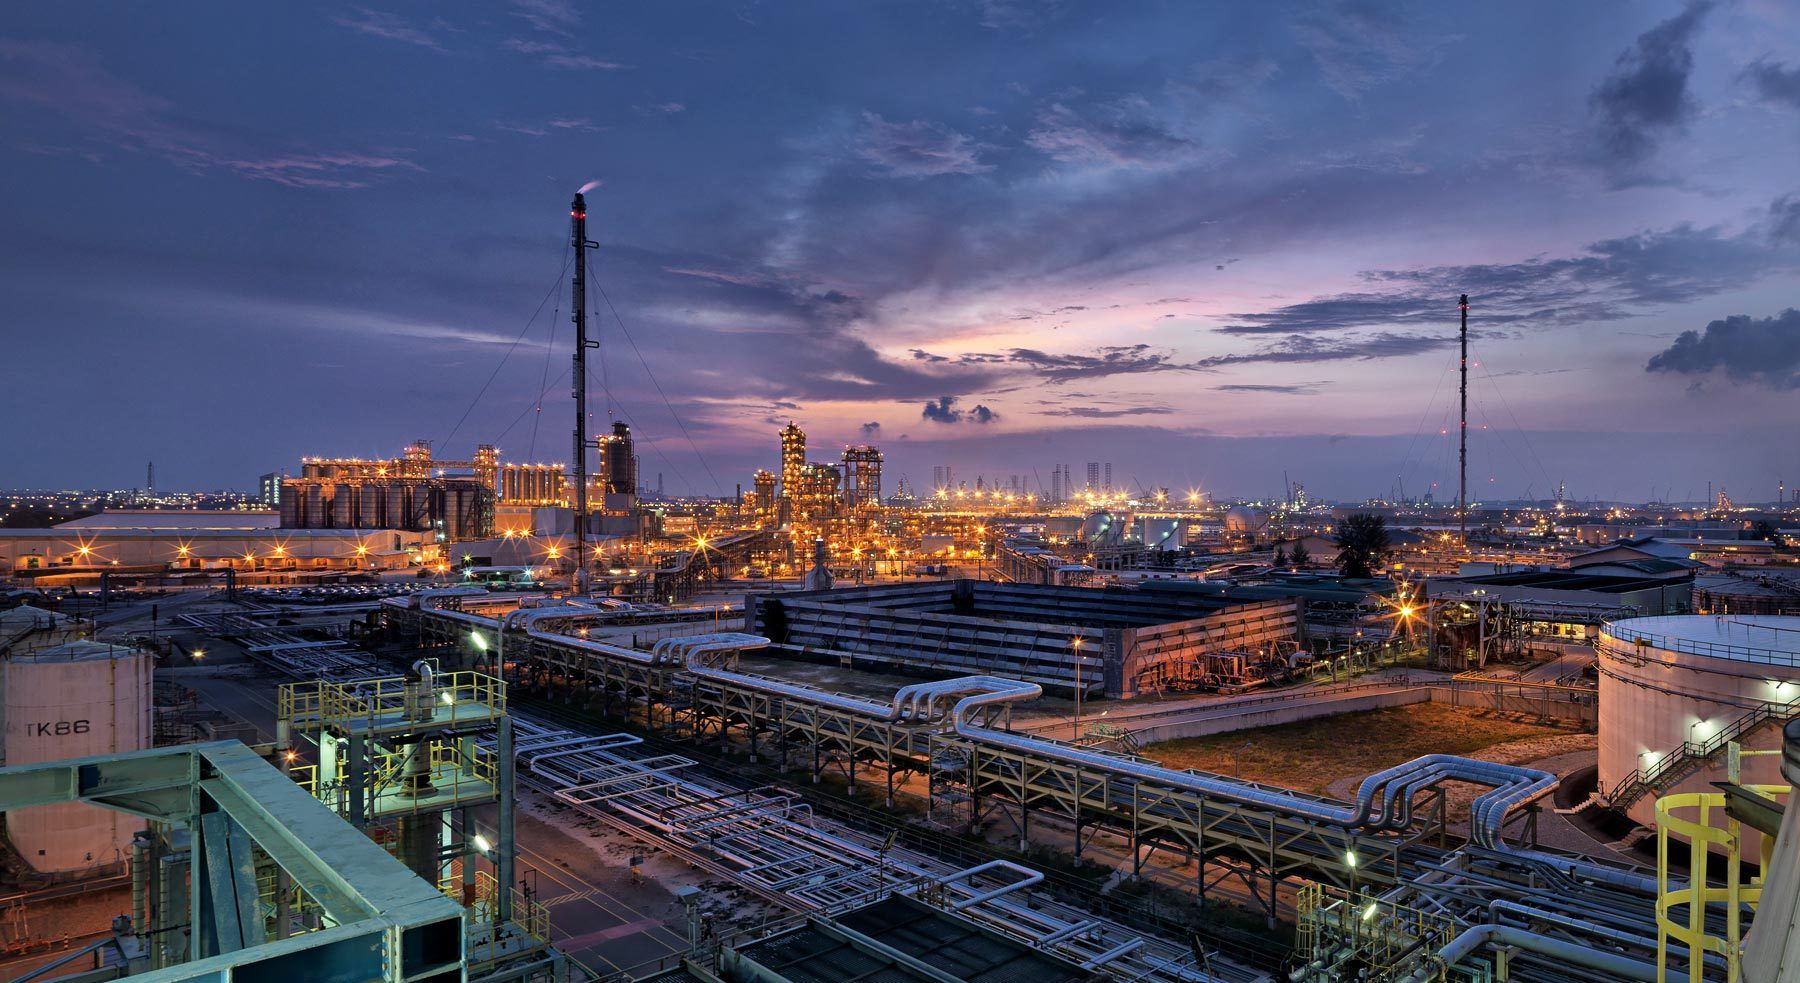 Singapore Chemical Plant - Exxon Mobil